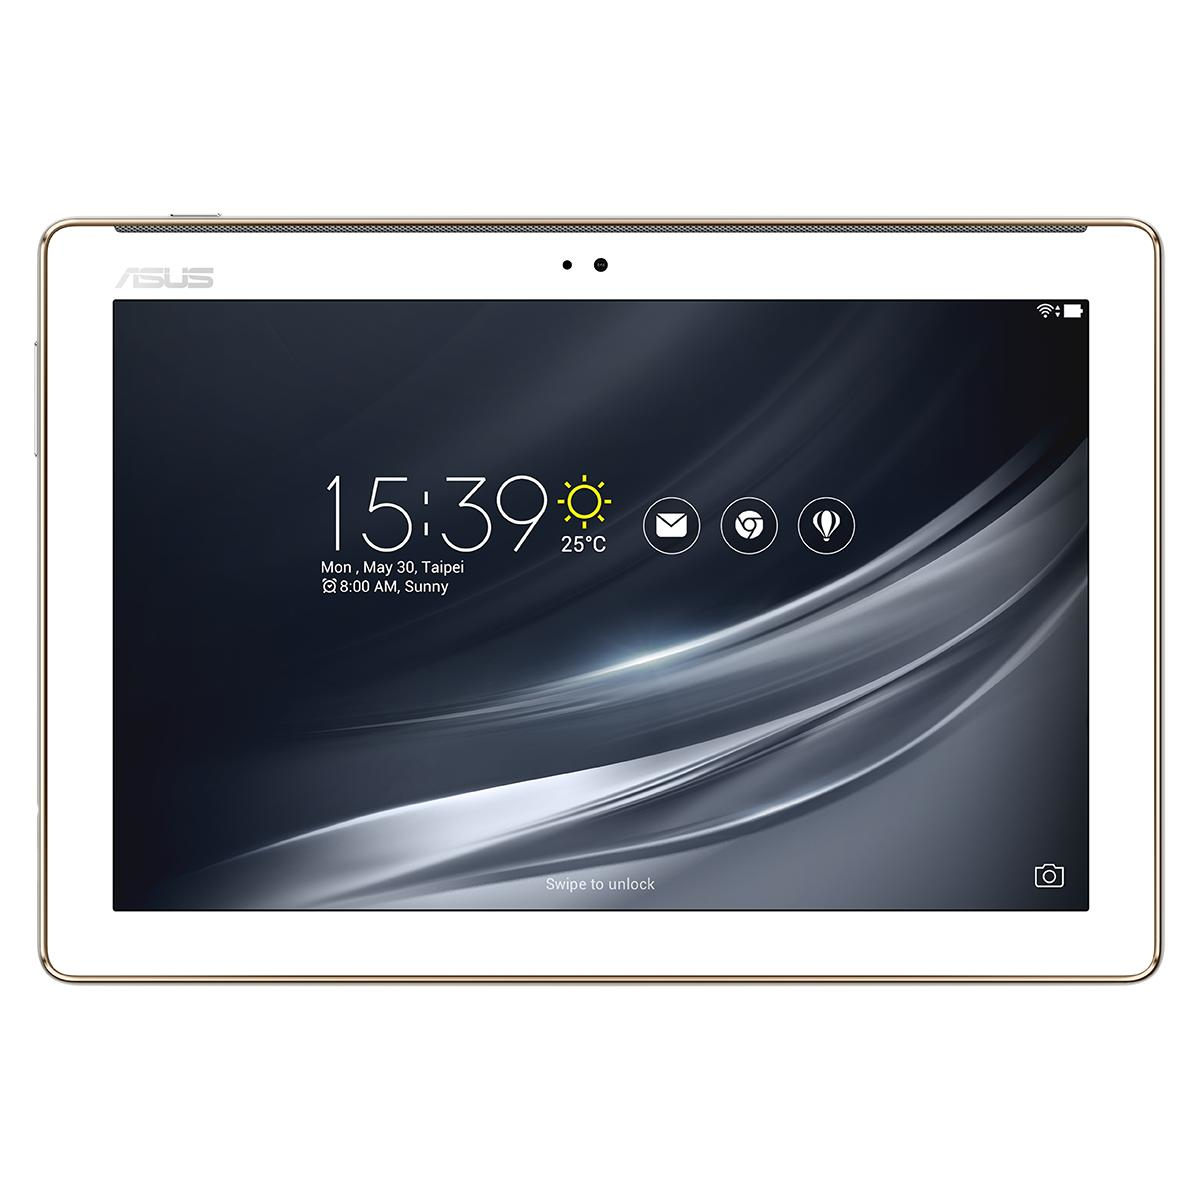 ASUS ZENPAD 10 Z301M-1B016A 16GB WHITE TABLET